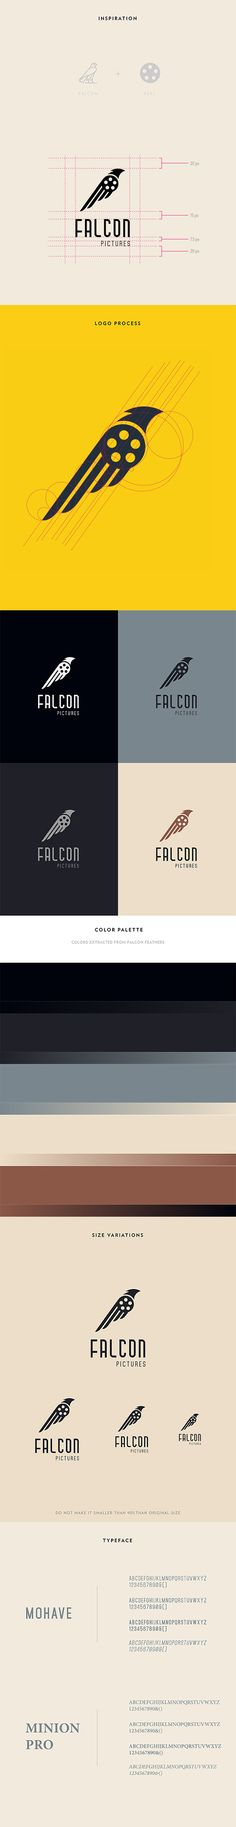 Falcon Pictures is a movie production company  dedicated towards pure film making, enhancing nepali movie experience with new concept, technology and creative ideas.